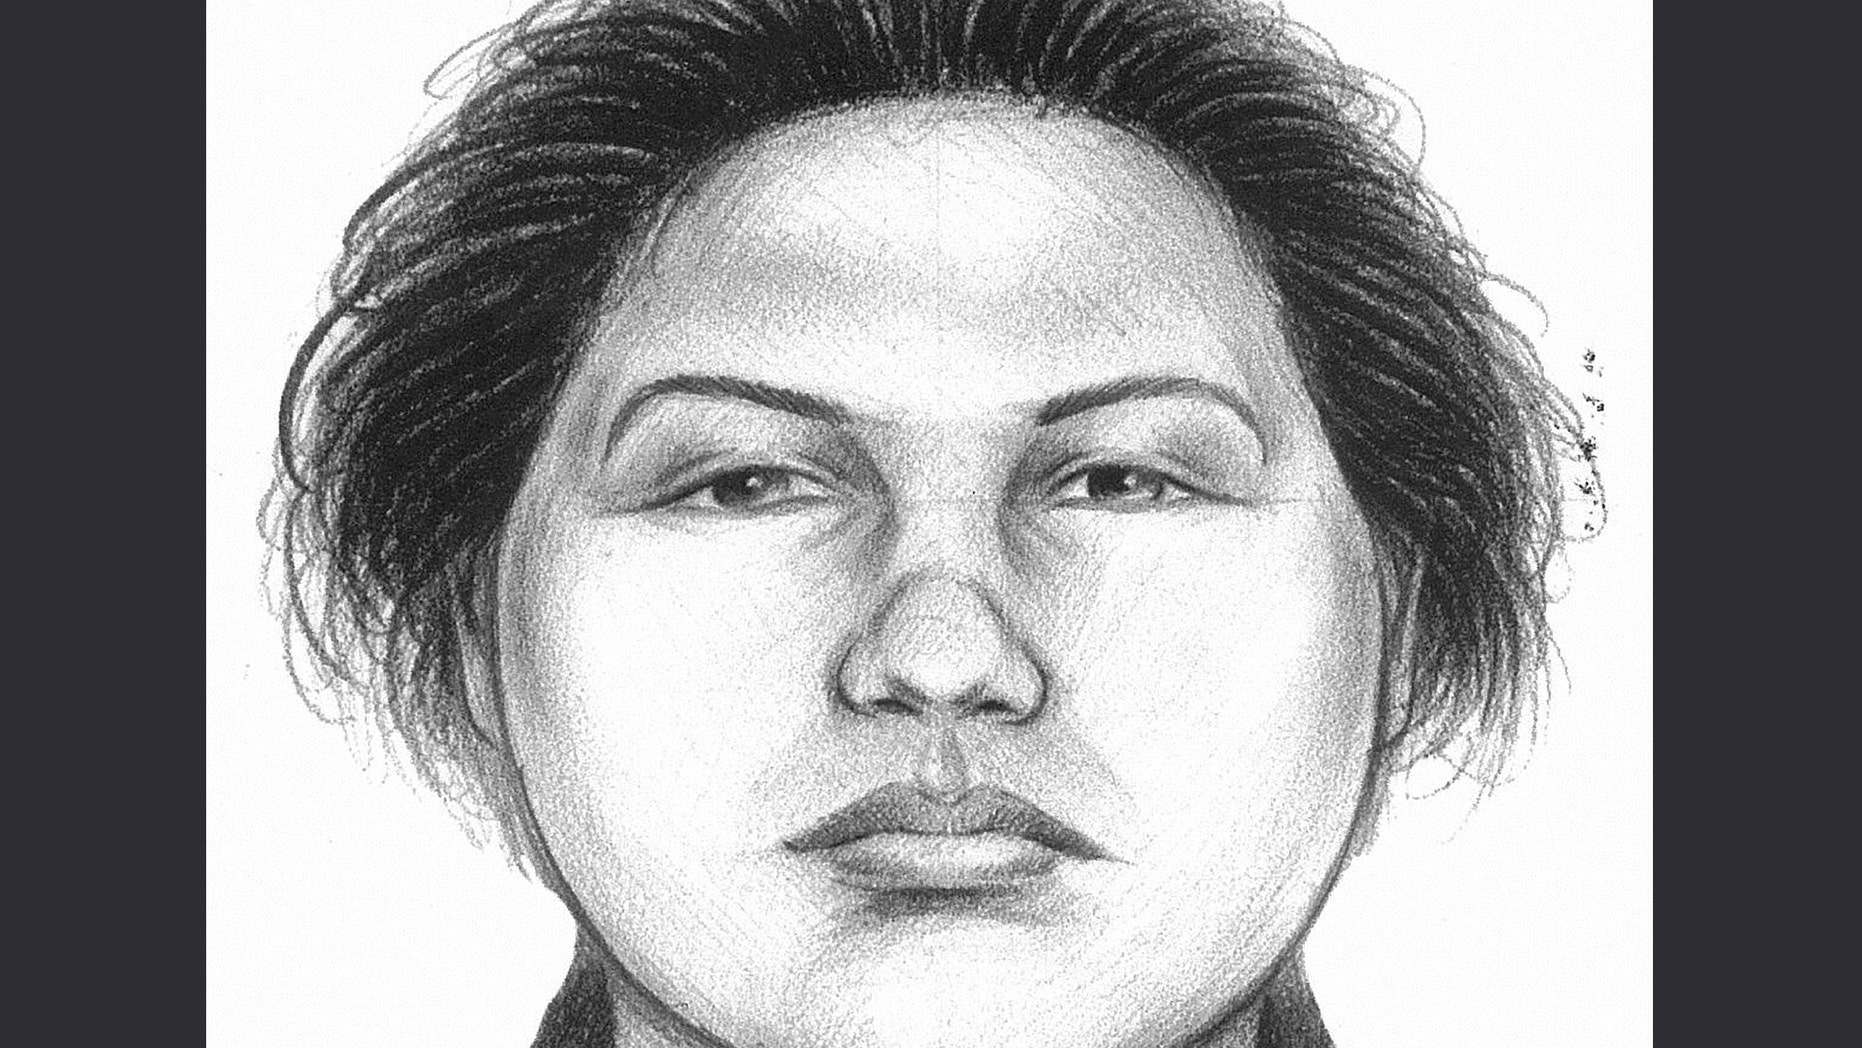 In this image provided by the New York City Police Department, a composite sketch showing the woman believed to have pushed a man to his death in front of a subway train on Thursday, Dec. 27, 2012 is shown.(AP Photo/New York City Police Department)